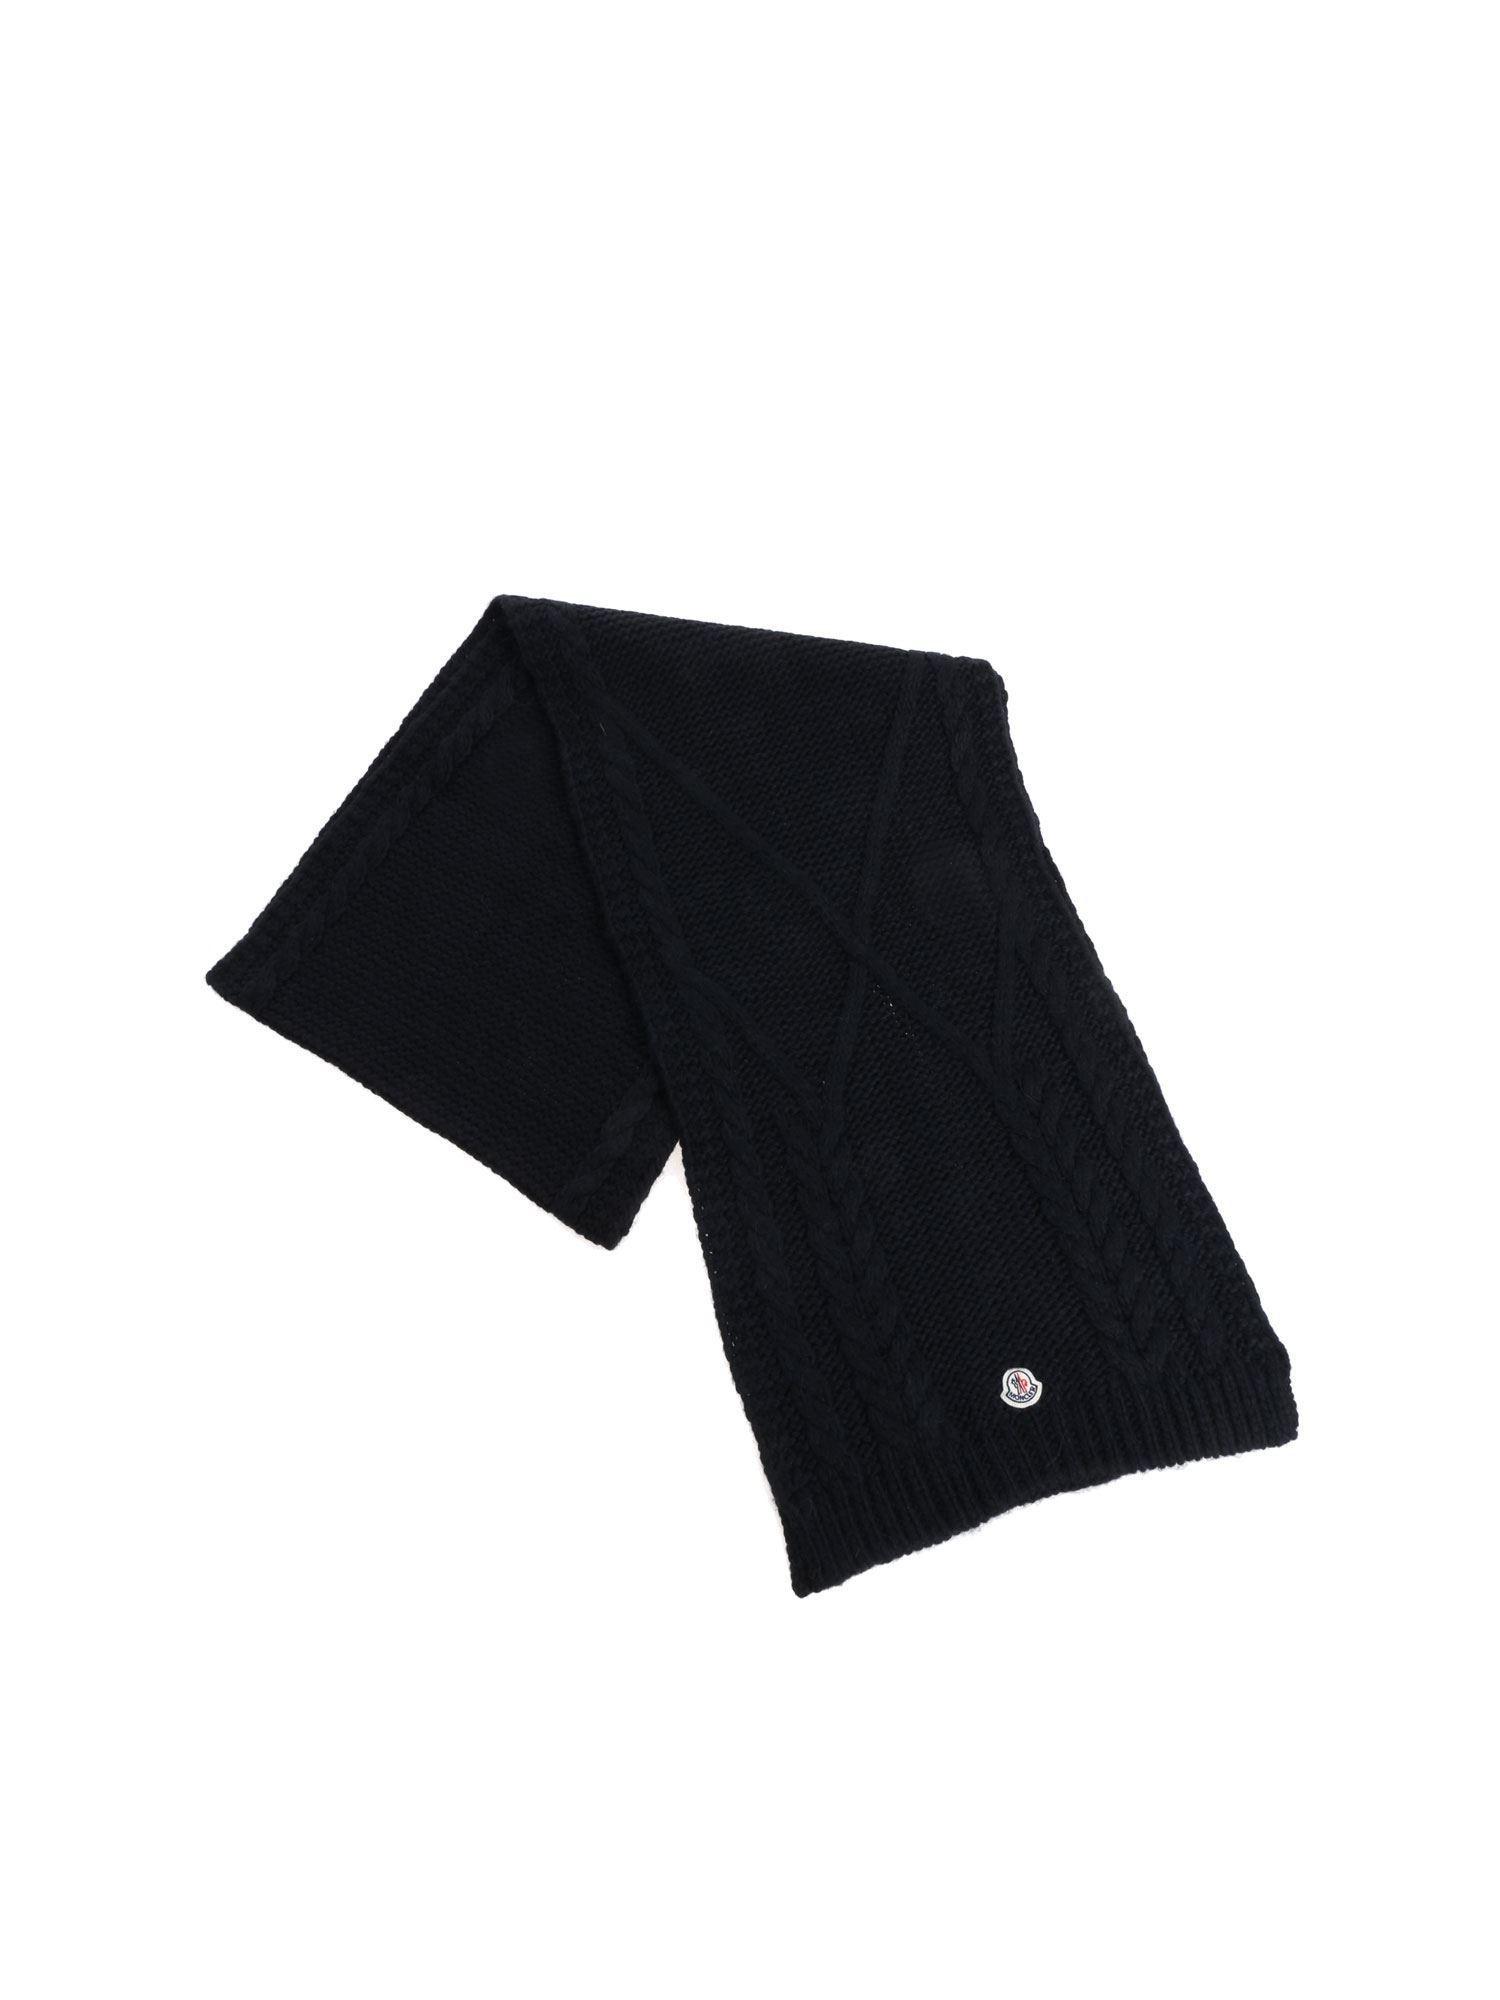 b9e983b98ce Lyst - Moncler Black Wool Blend Scarf in Black